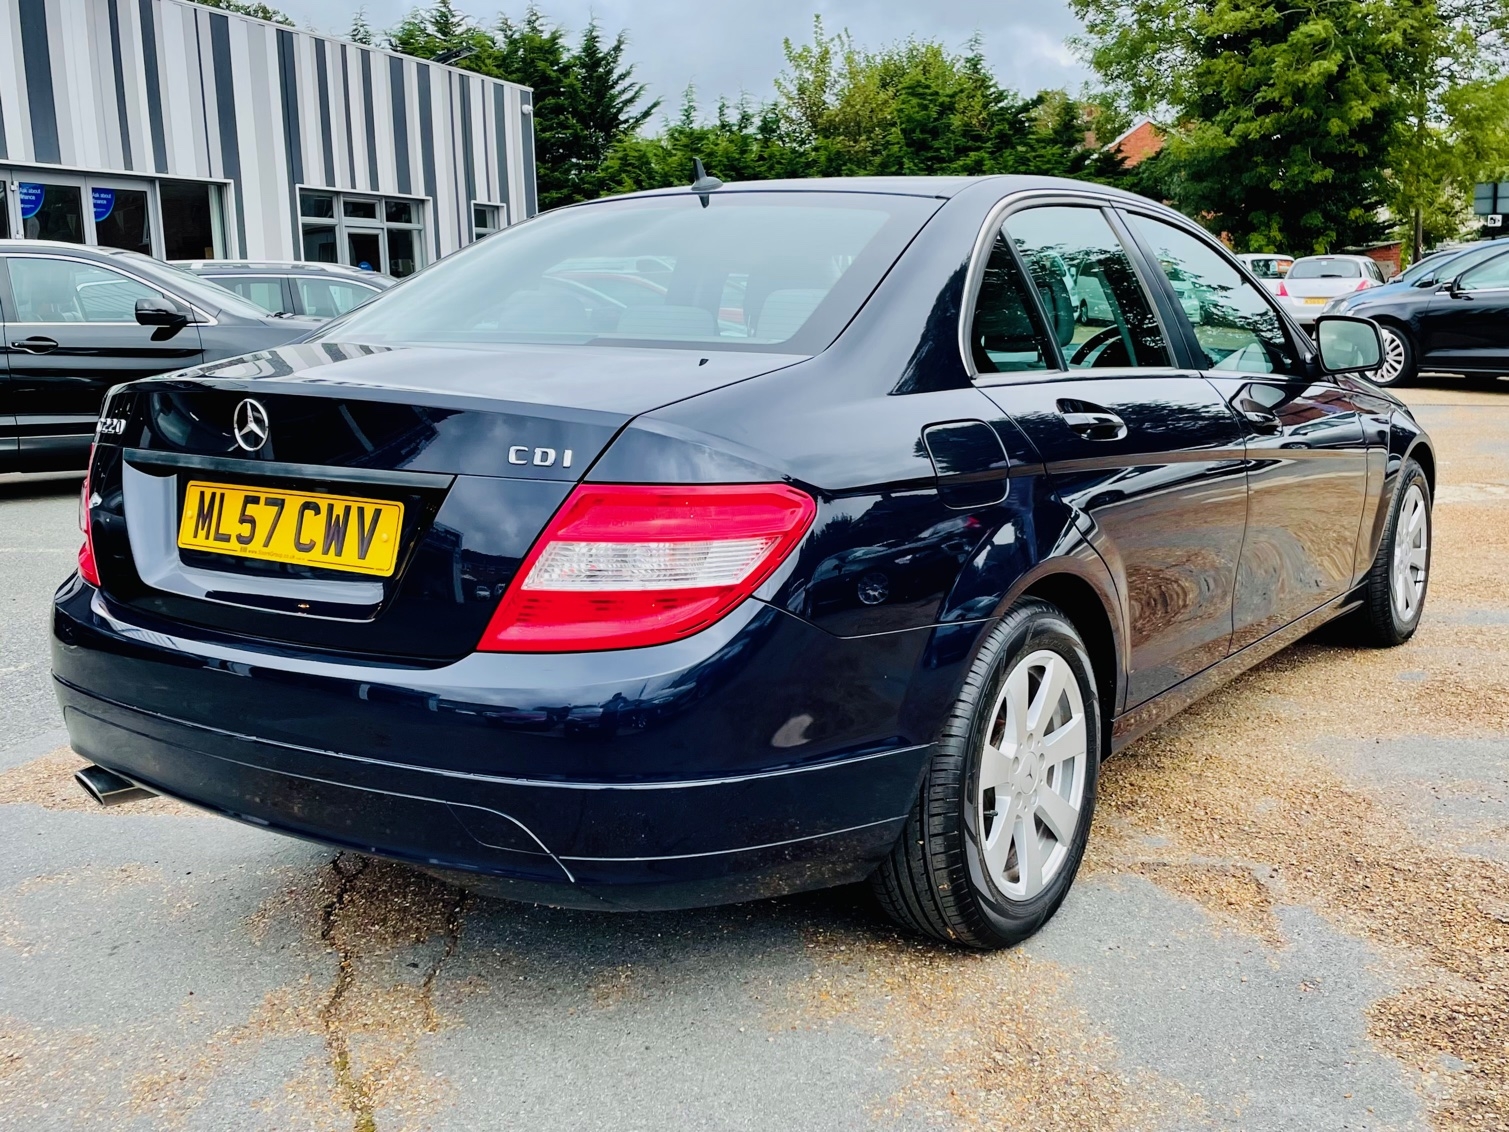 Car For Sale Mercedes C-Class - ML57CWV Sixers Group Image #3